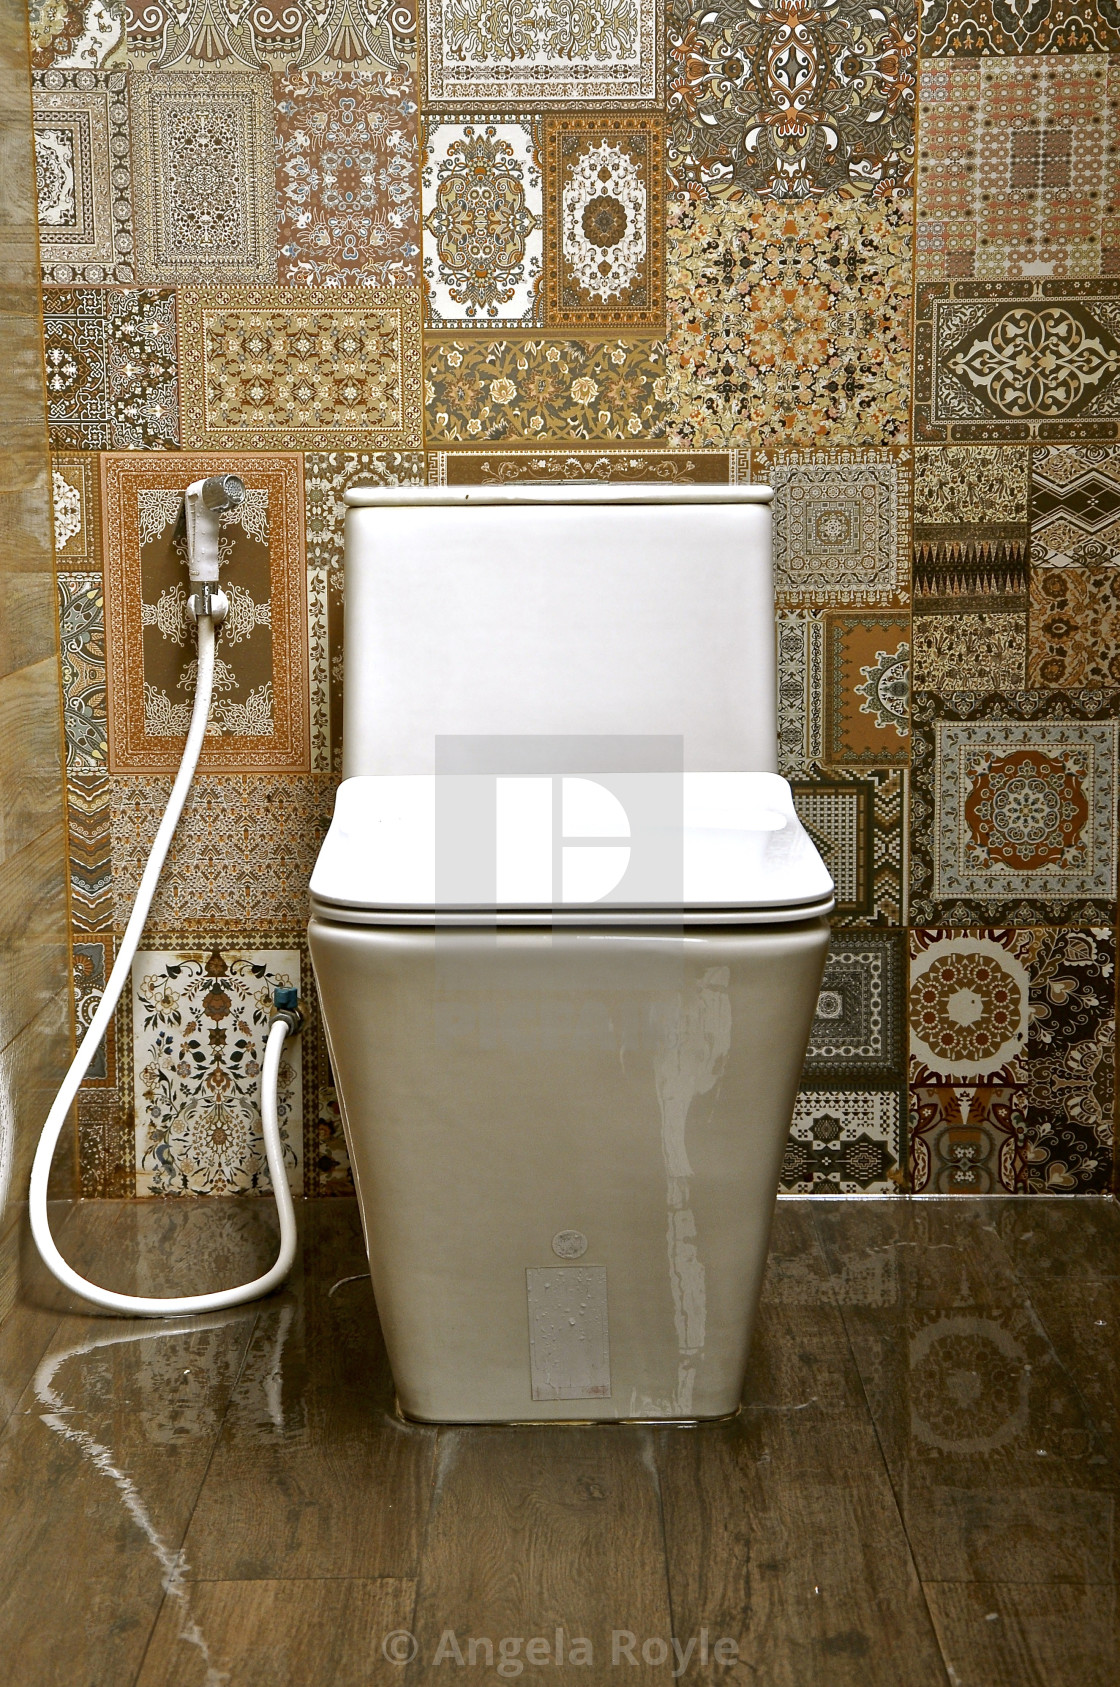 White ceramic toilet in a tiled room - License, download or